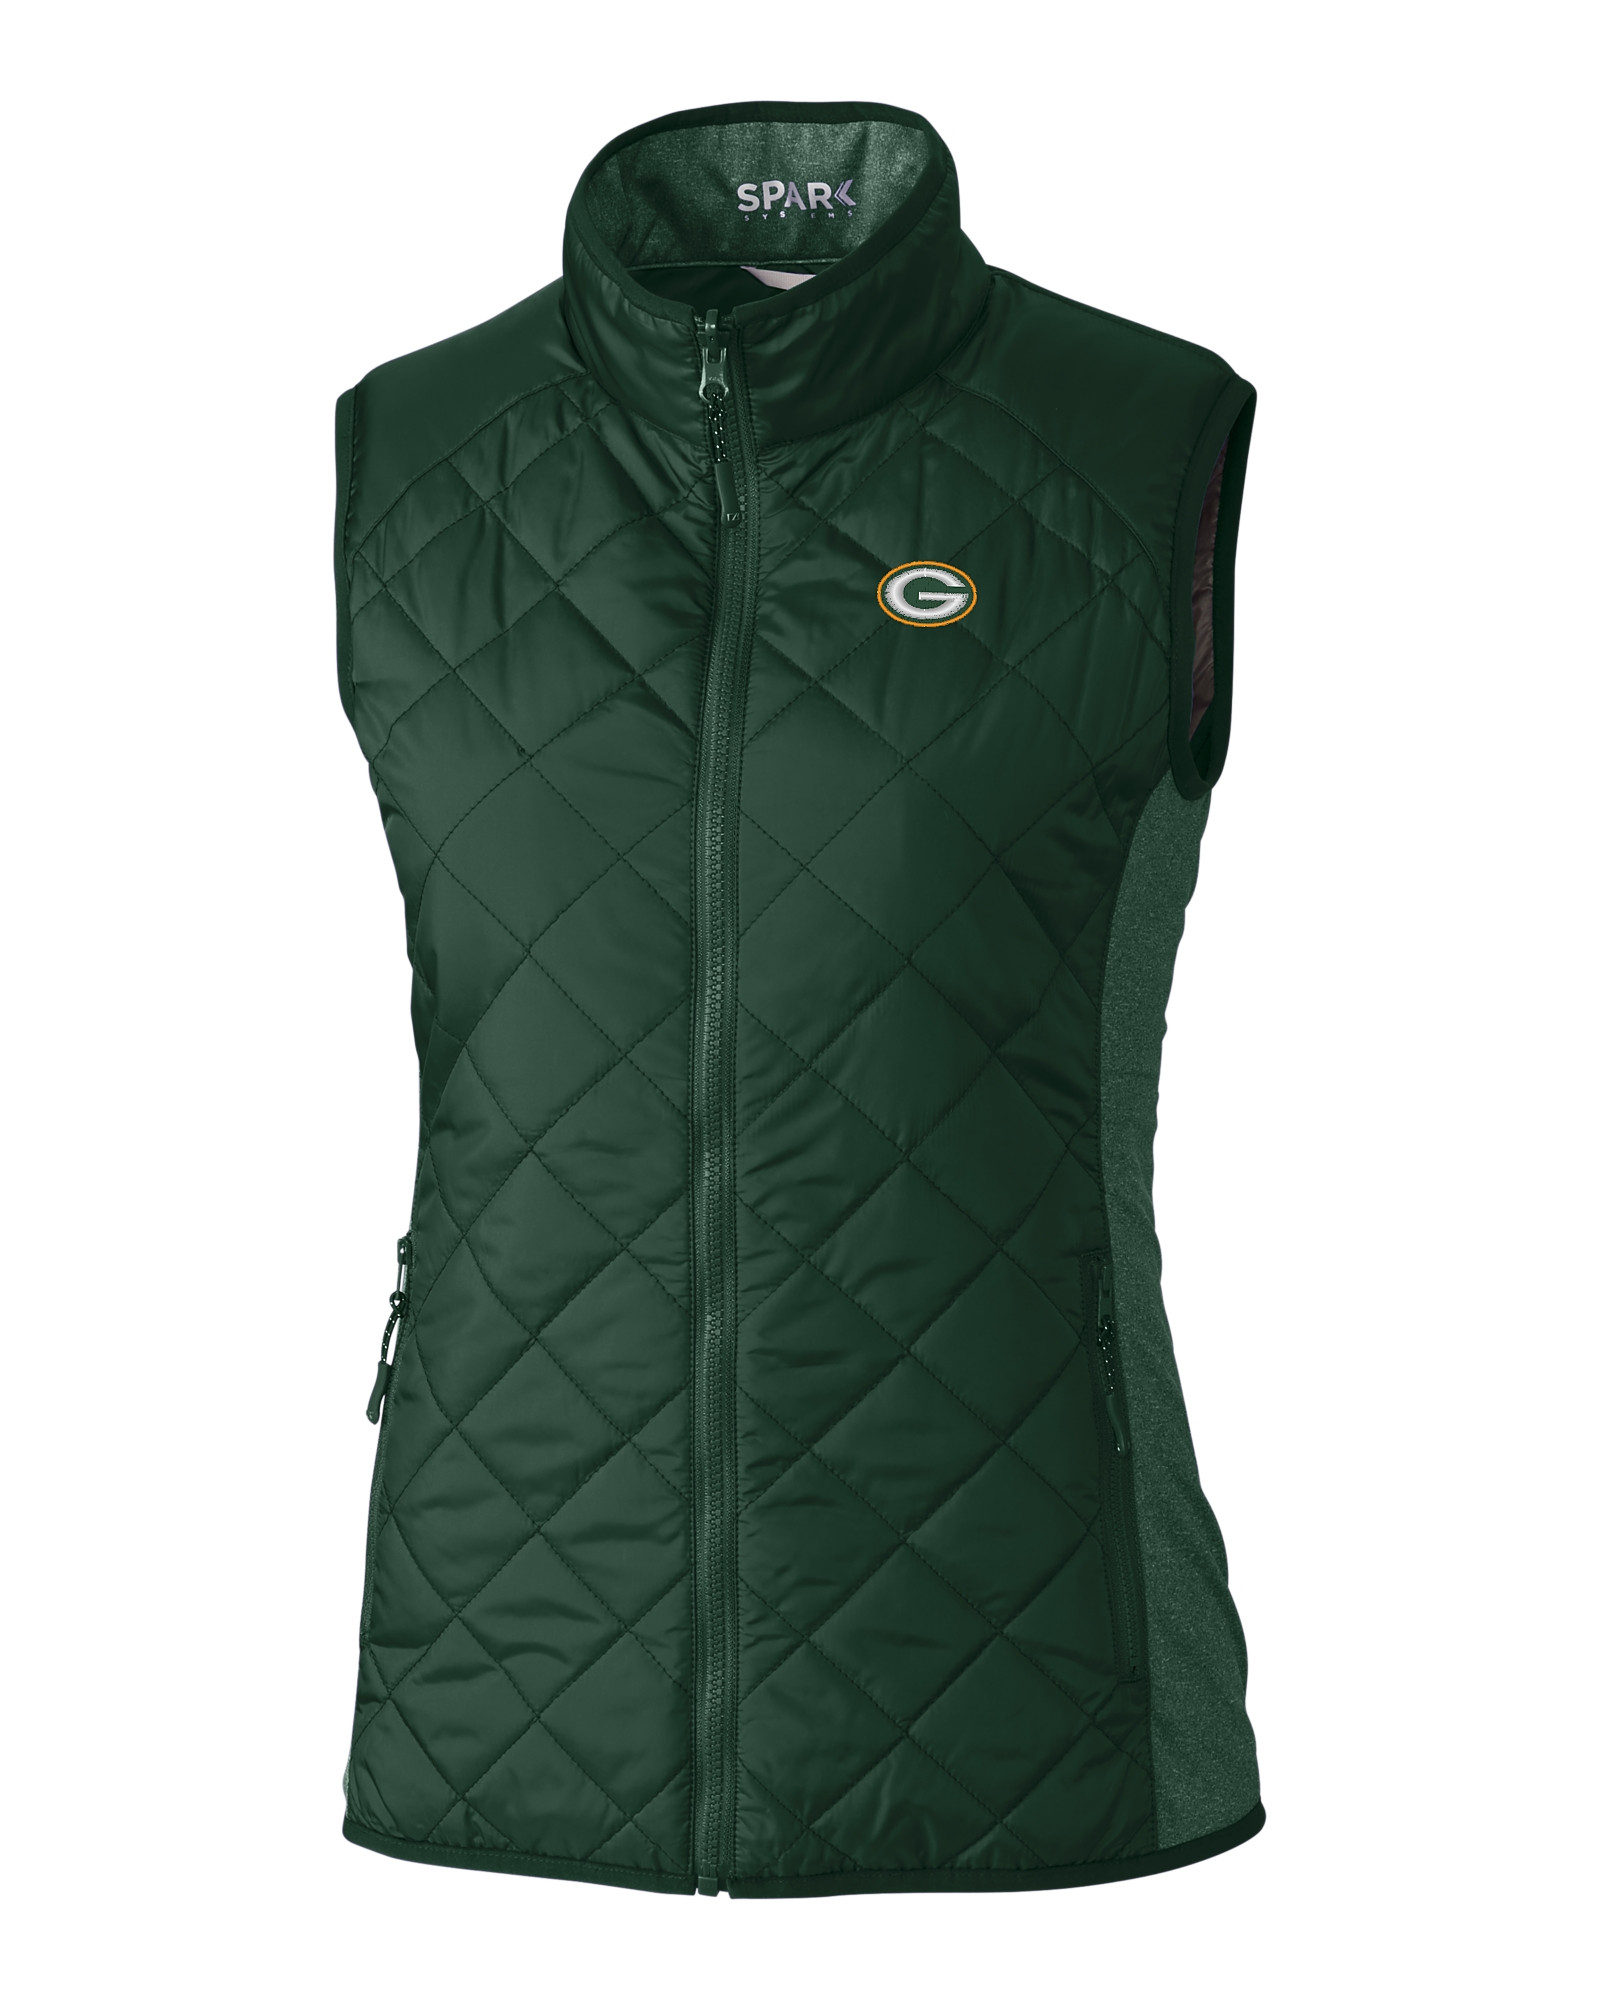 1fbd76f3 Green Bay Packers Ladies' Sandpoint Quilted Vest